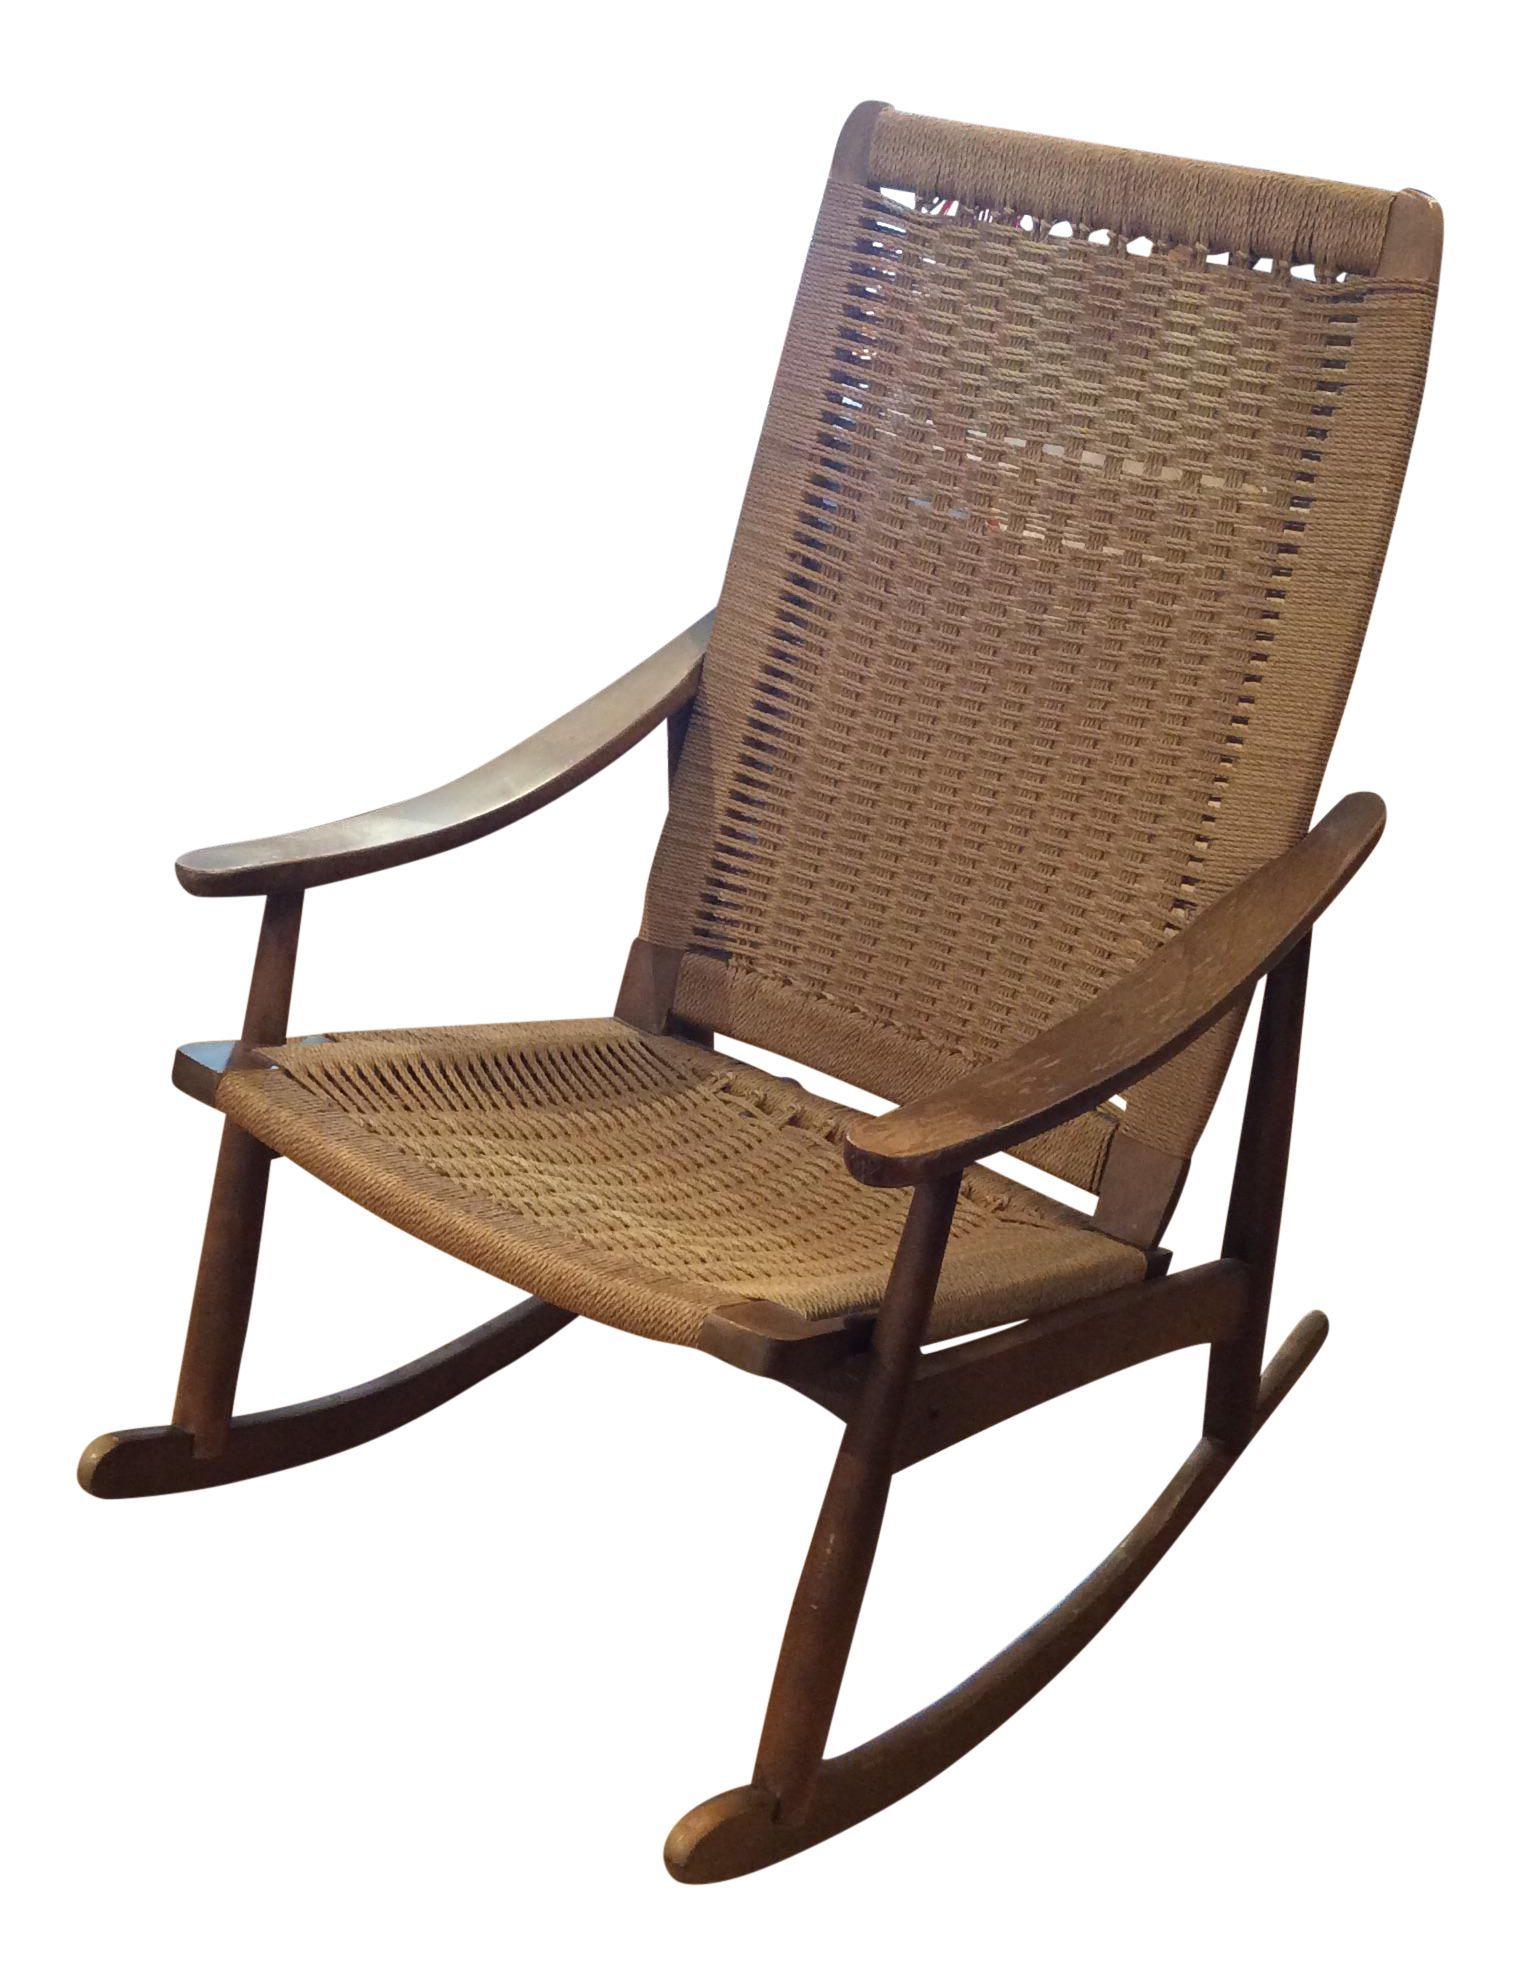 Vintage Mid Century Rocking Chair